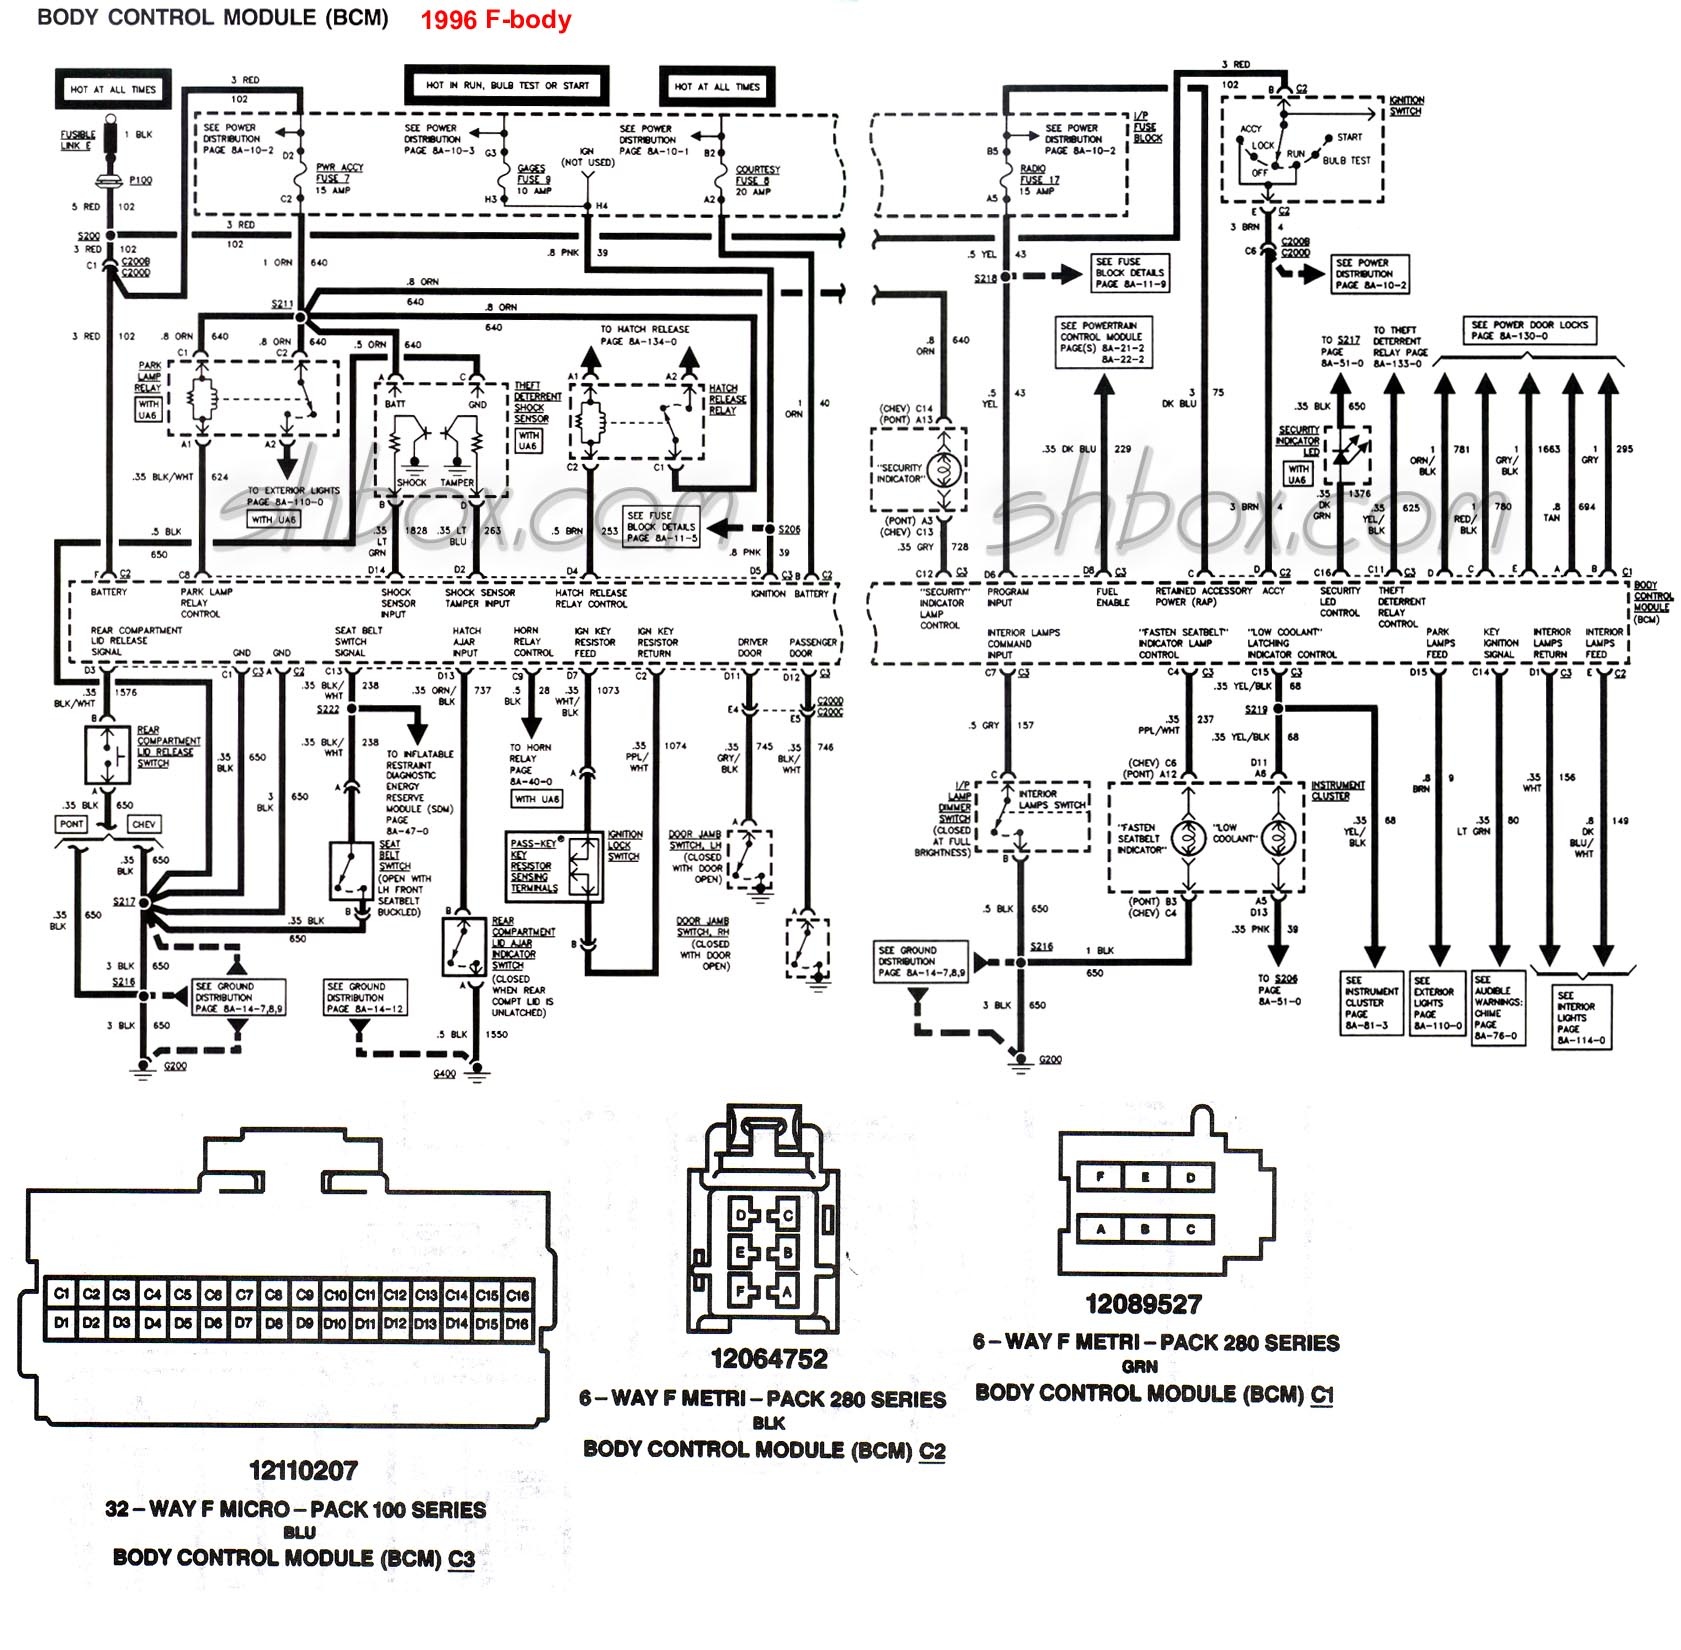 hight resolution of 99 camaro wiring diagram wiring diagram meta4th gen lt1 f body tech aids 99 camaro fuse